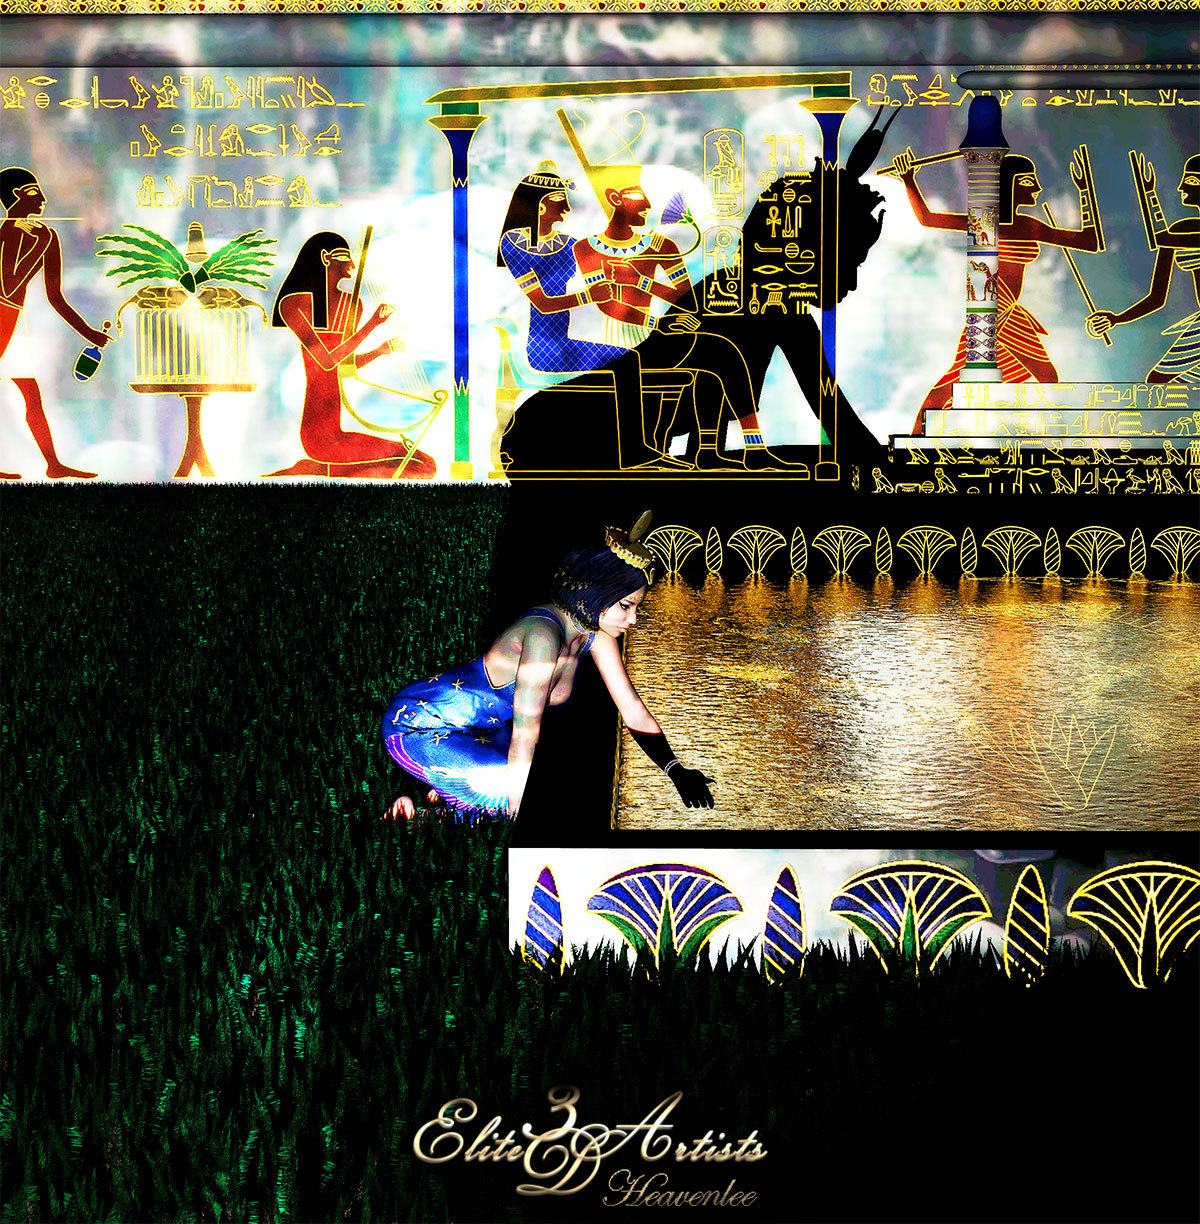 The Pharaohs Garden by Heavenlee